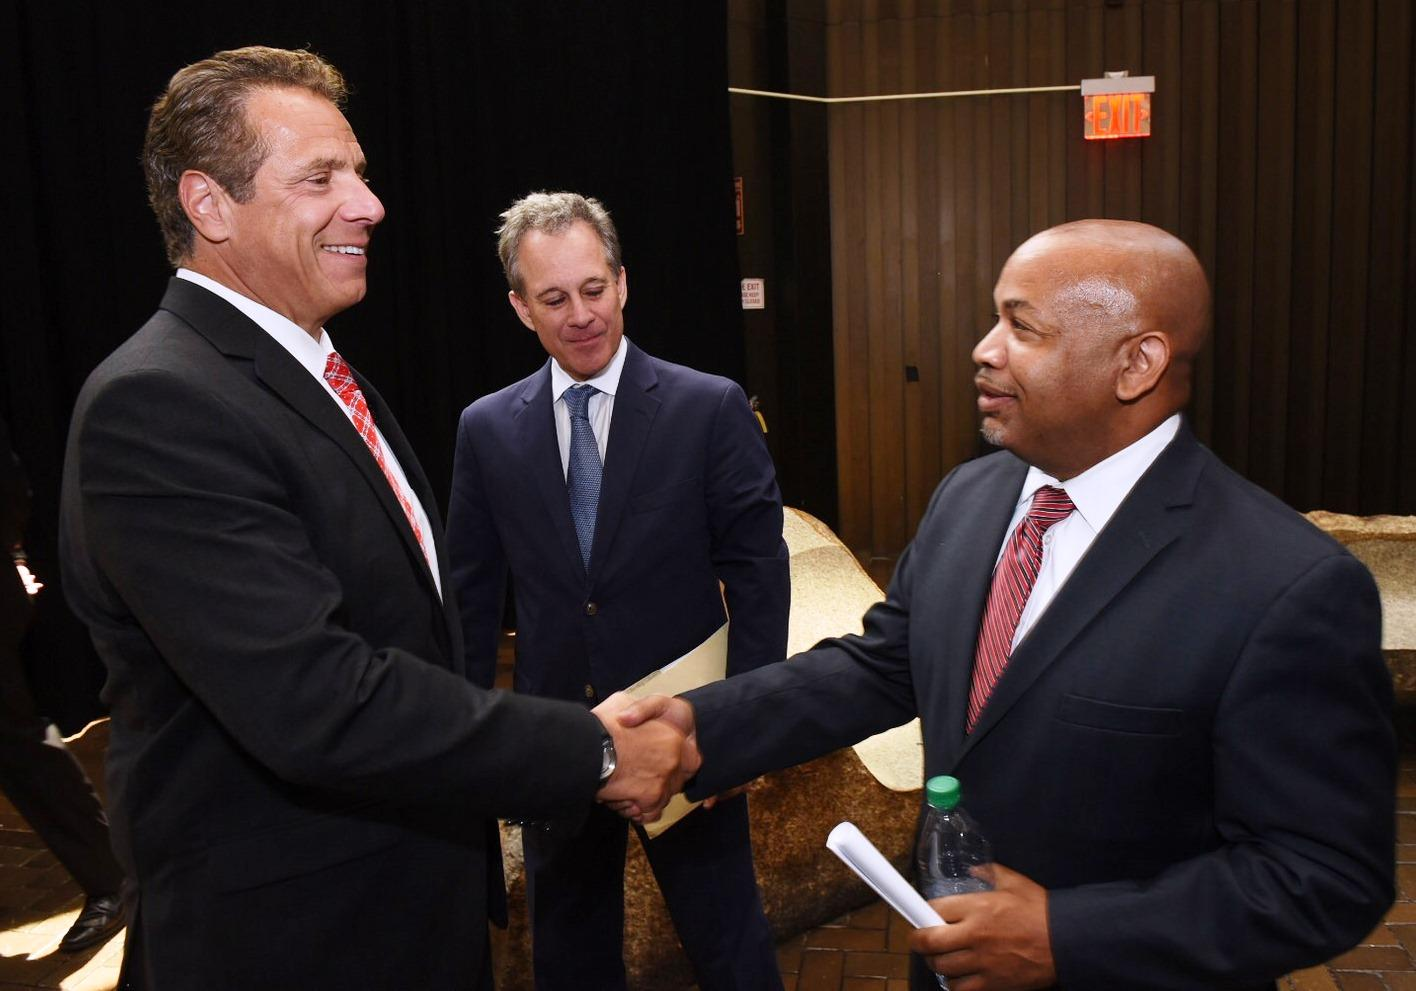 Gov. Cuomo AG Eric Schneiderman and Assembly Speaker Carl Heastie greet each other at a rally Monday